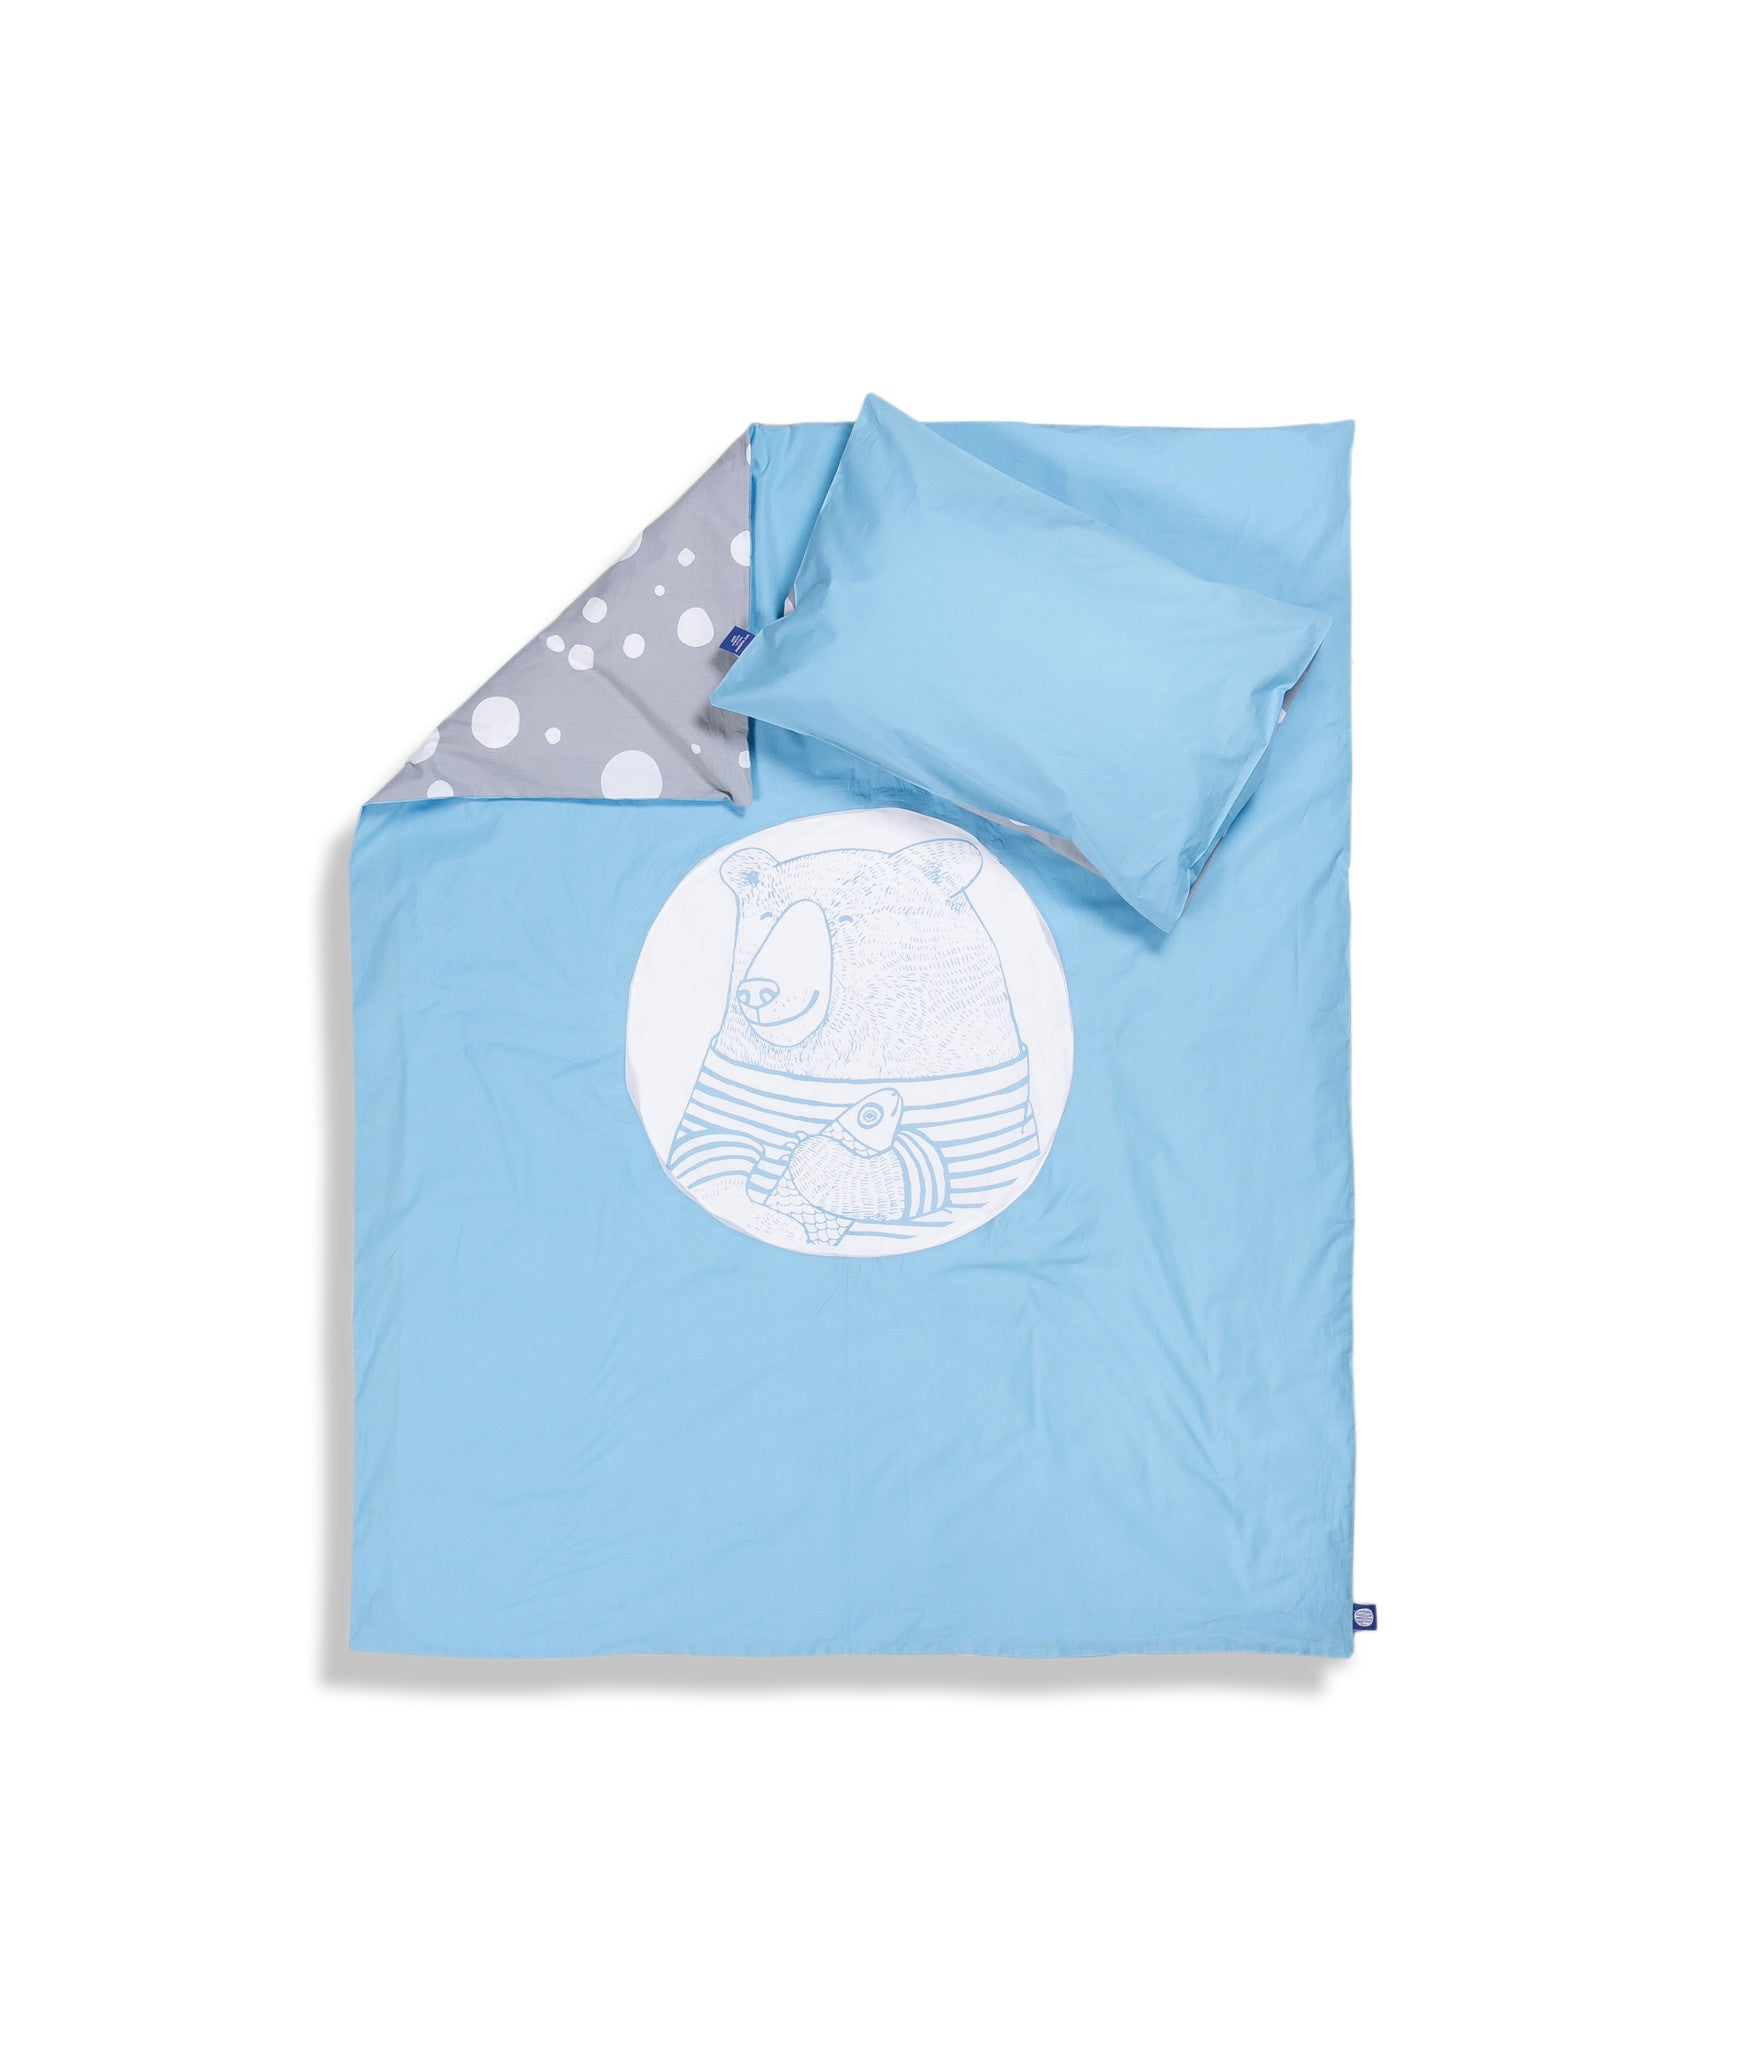 Organic cotton blue cot bed set. Baby bedding. Grey and blue colours. Pillow case and duvet cover. Dotted pattern bed linen. Main character bear Moony.